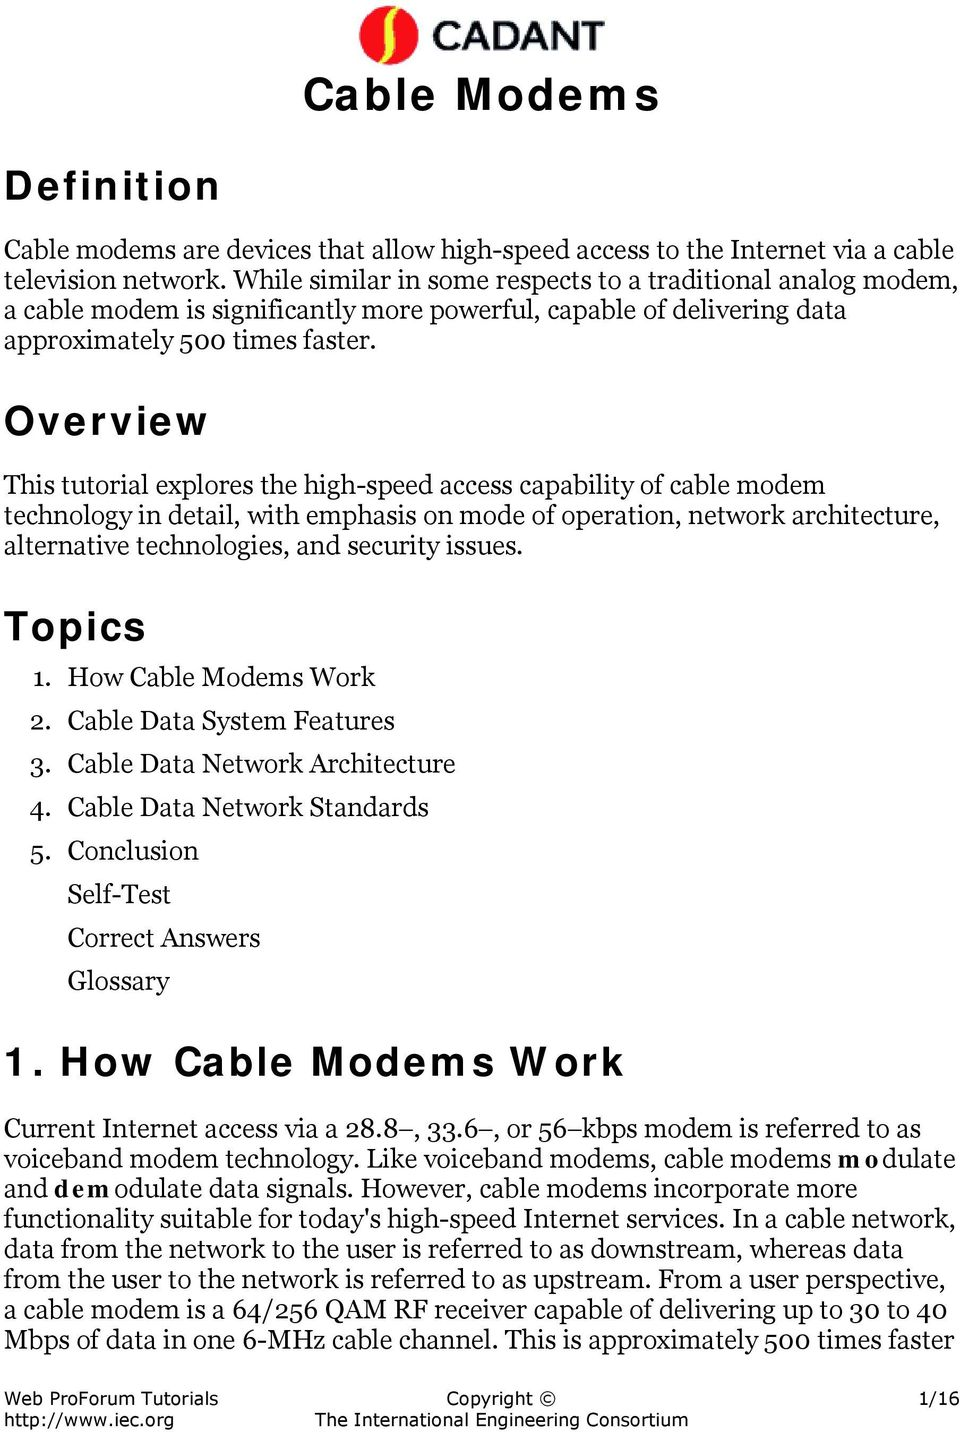 Overview This tutorial explores the high-speed access capability of cable modem technology in detail, with emphasis on mode of operation, network architecture, alternative technologies, and security